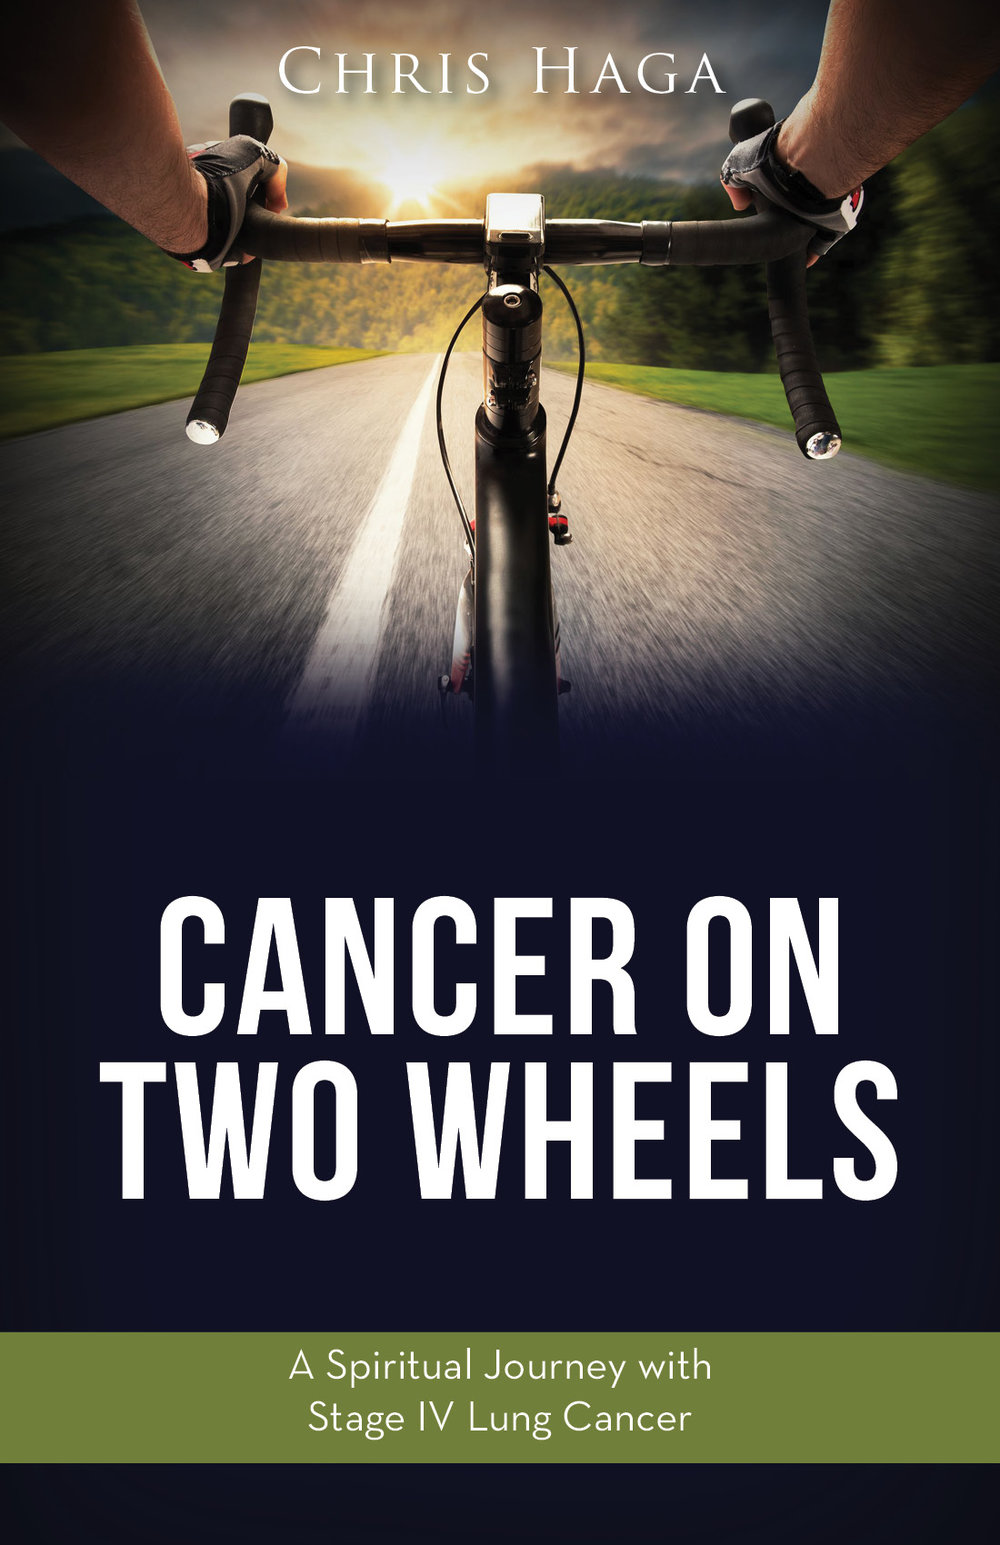 Cancer on Two Wheels Book Cover written by Chris Haga